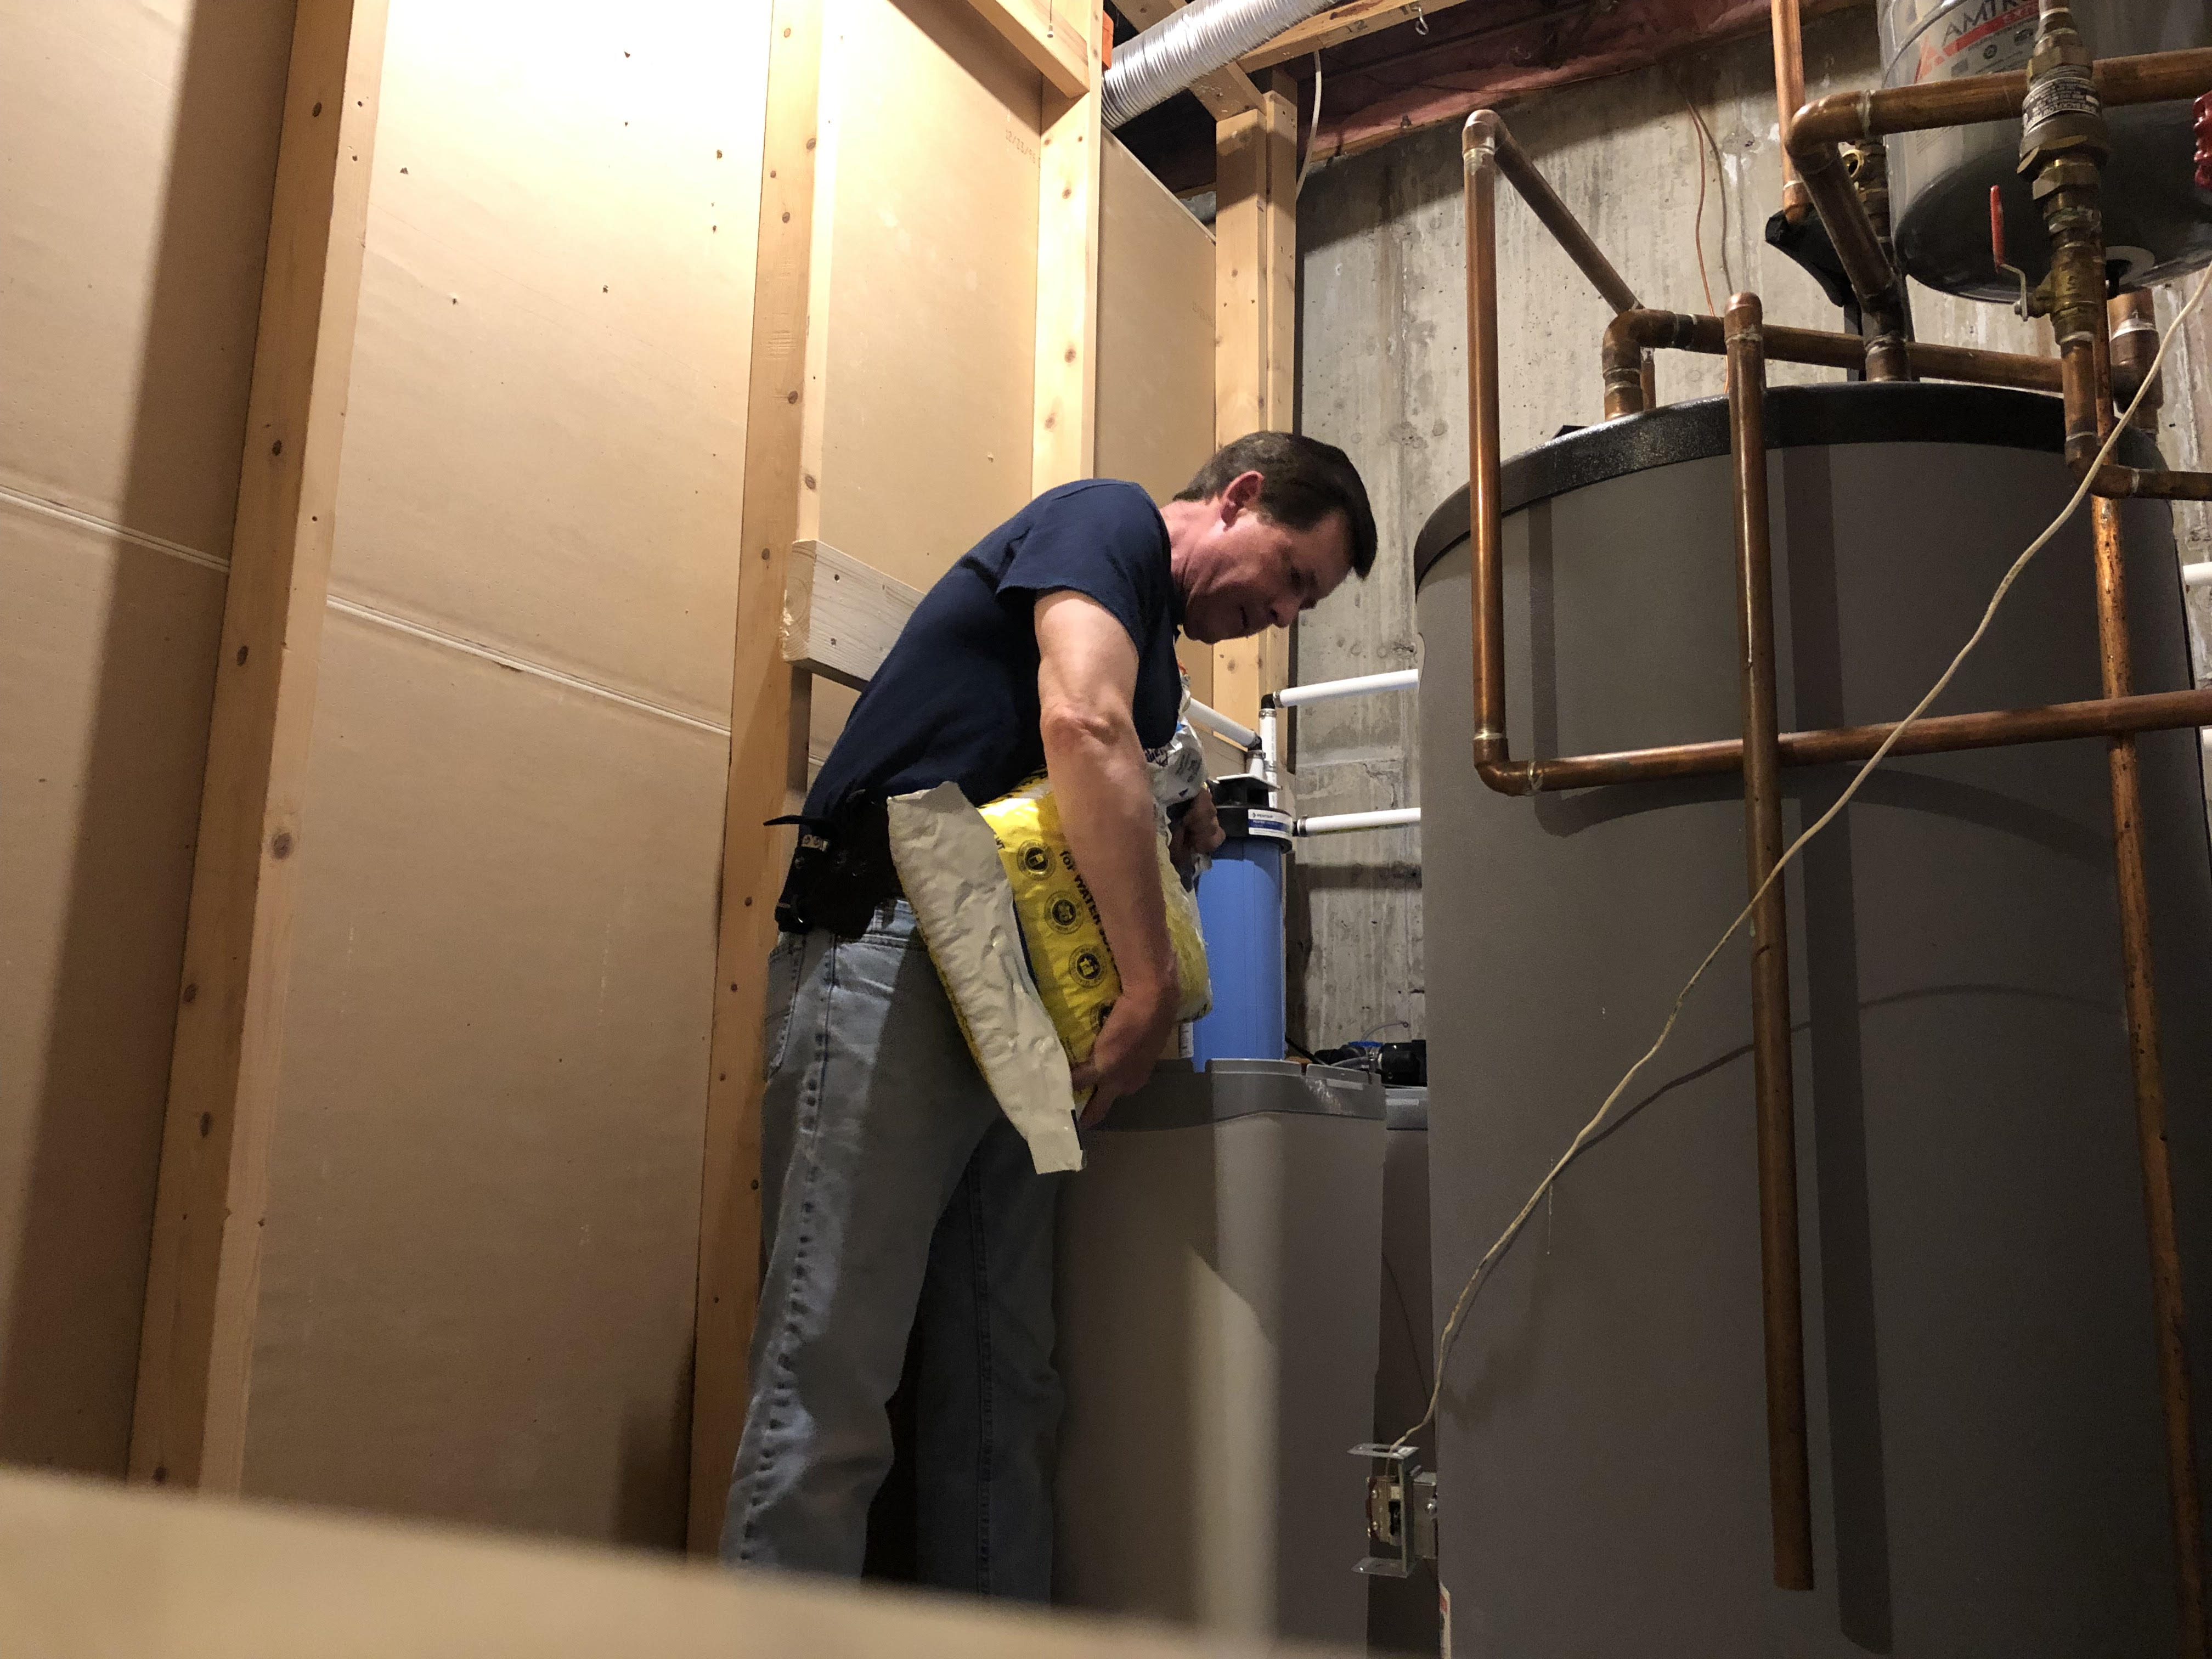 Tom final touches on water treatment system install in Evergreen